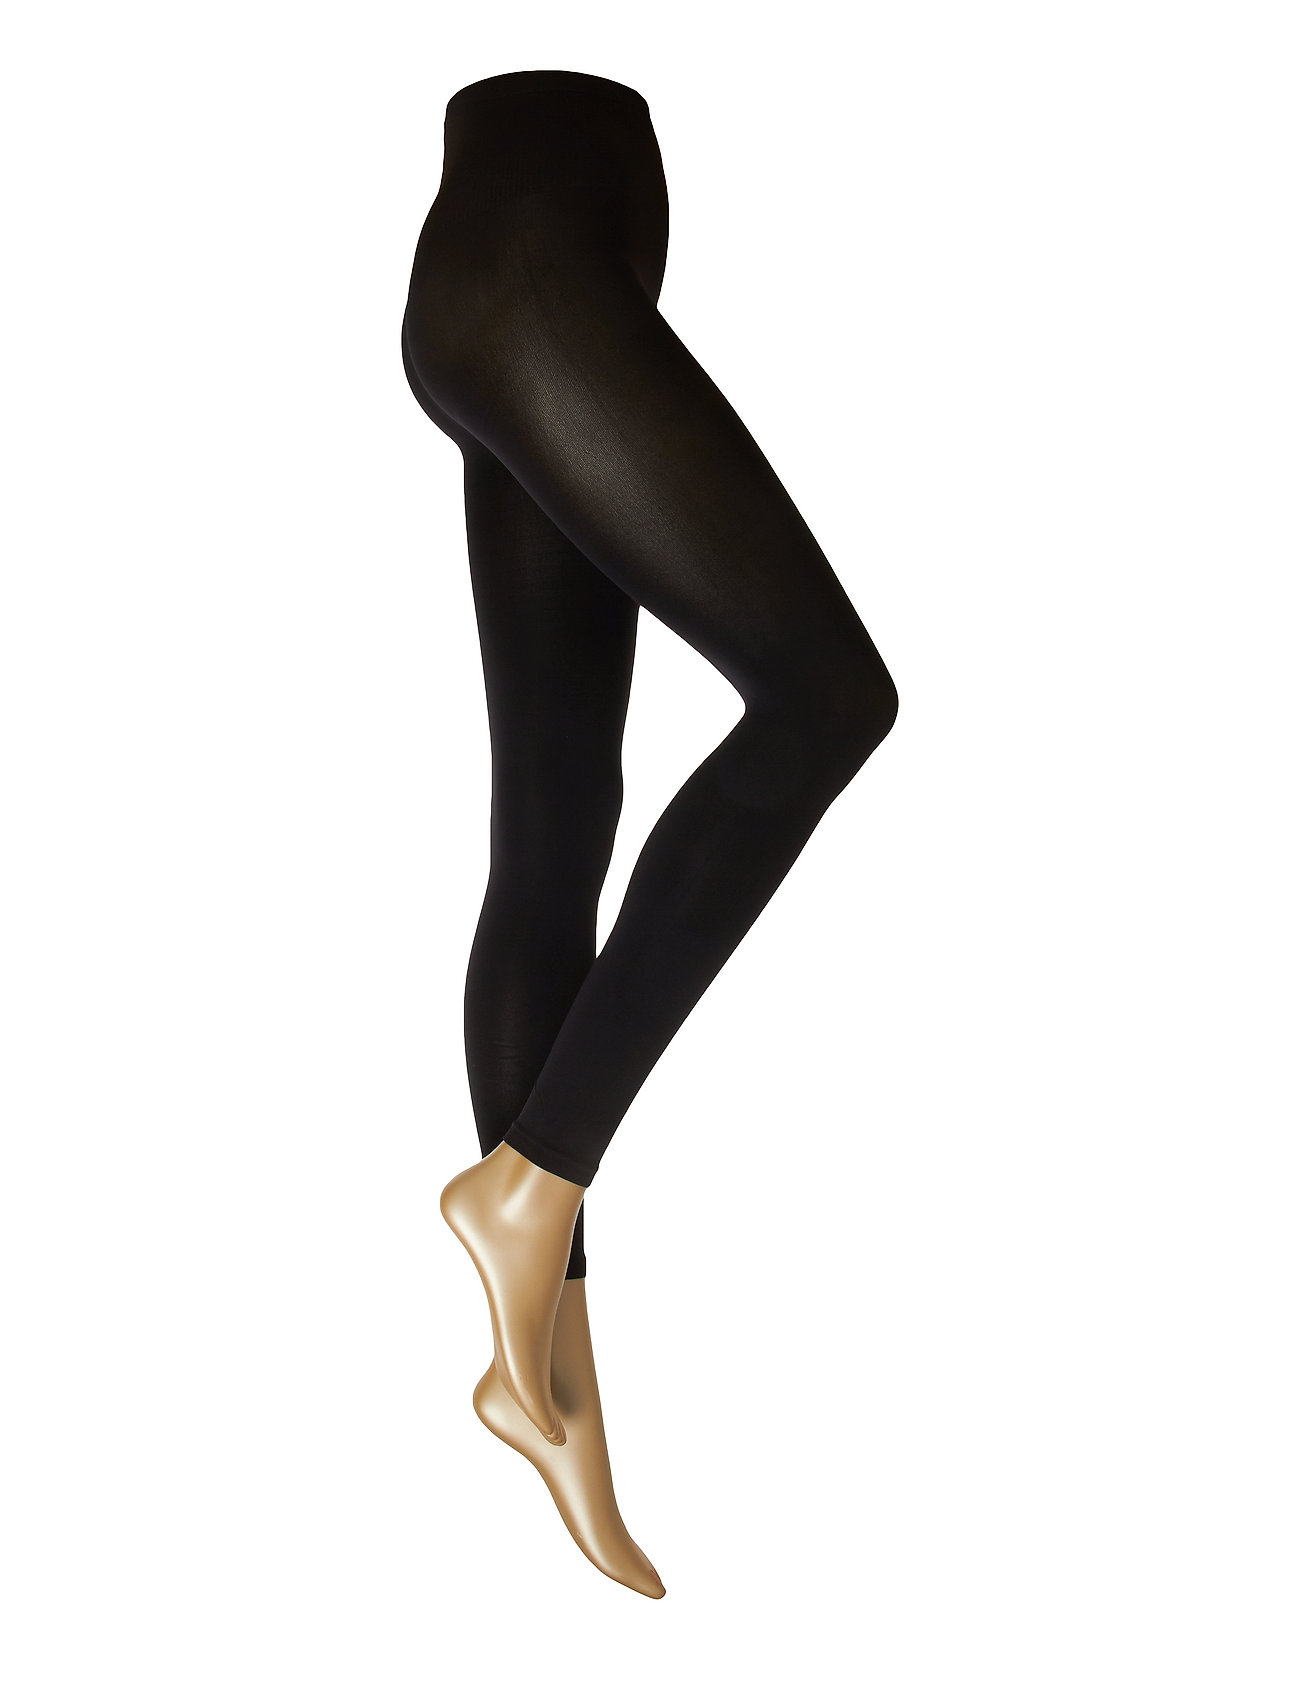 Swedish Stockings Lia Premium leggings 100D - BLACK